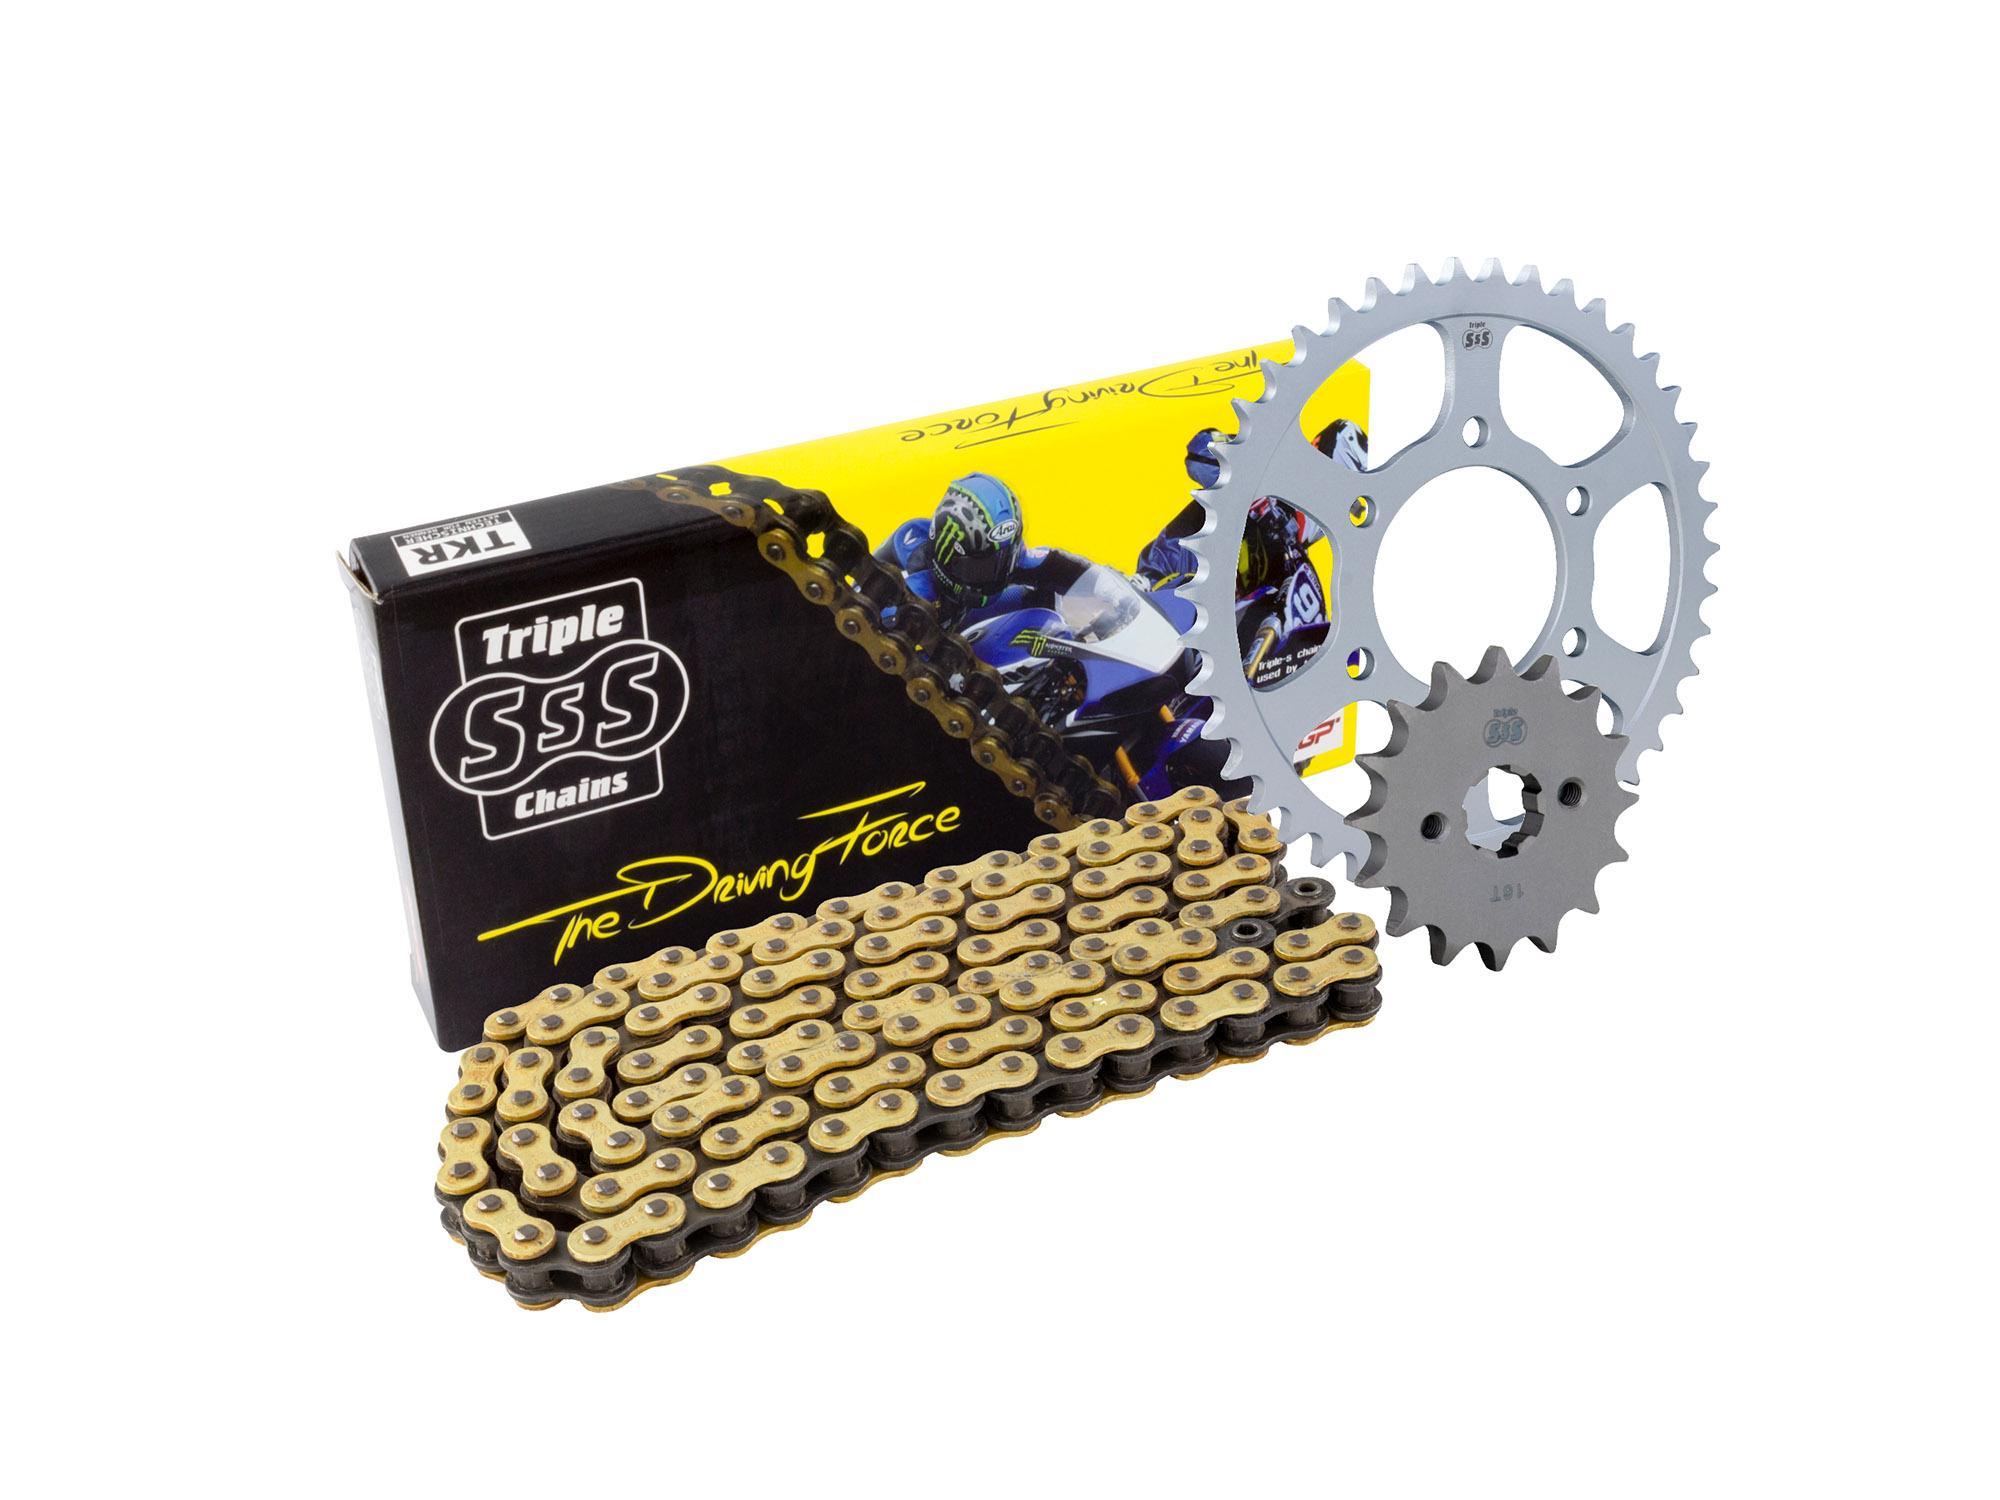 Triumph 600 Daytona 03-04, 650 Daytona 05 Chain & Sprocket Kit: 14T Front, 45T Rear, HD O-Ring Gold Chain 525H 108 Link